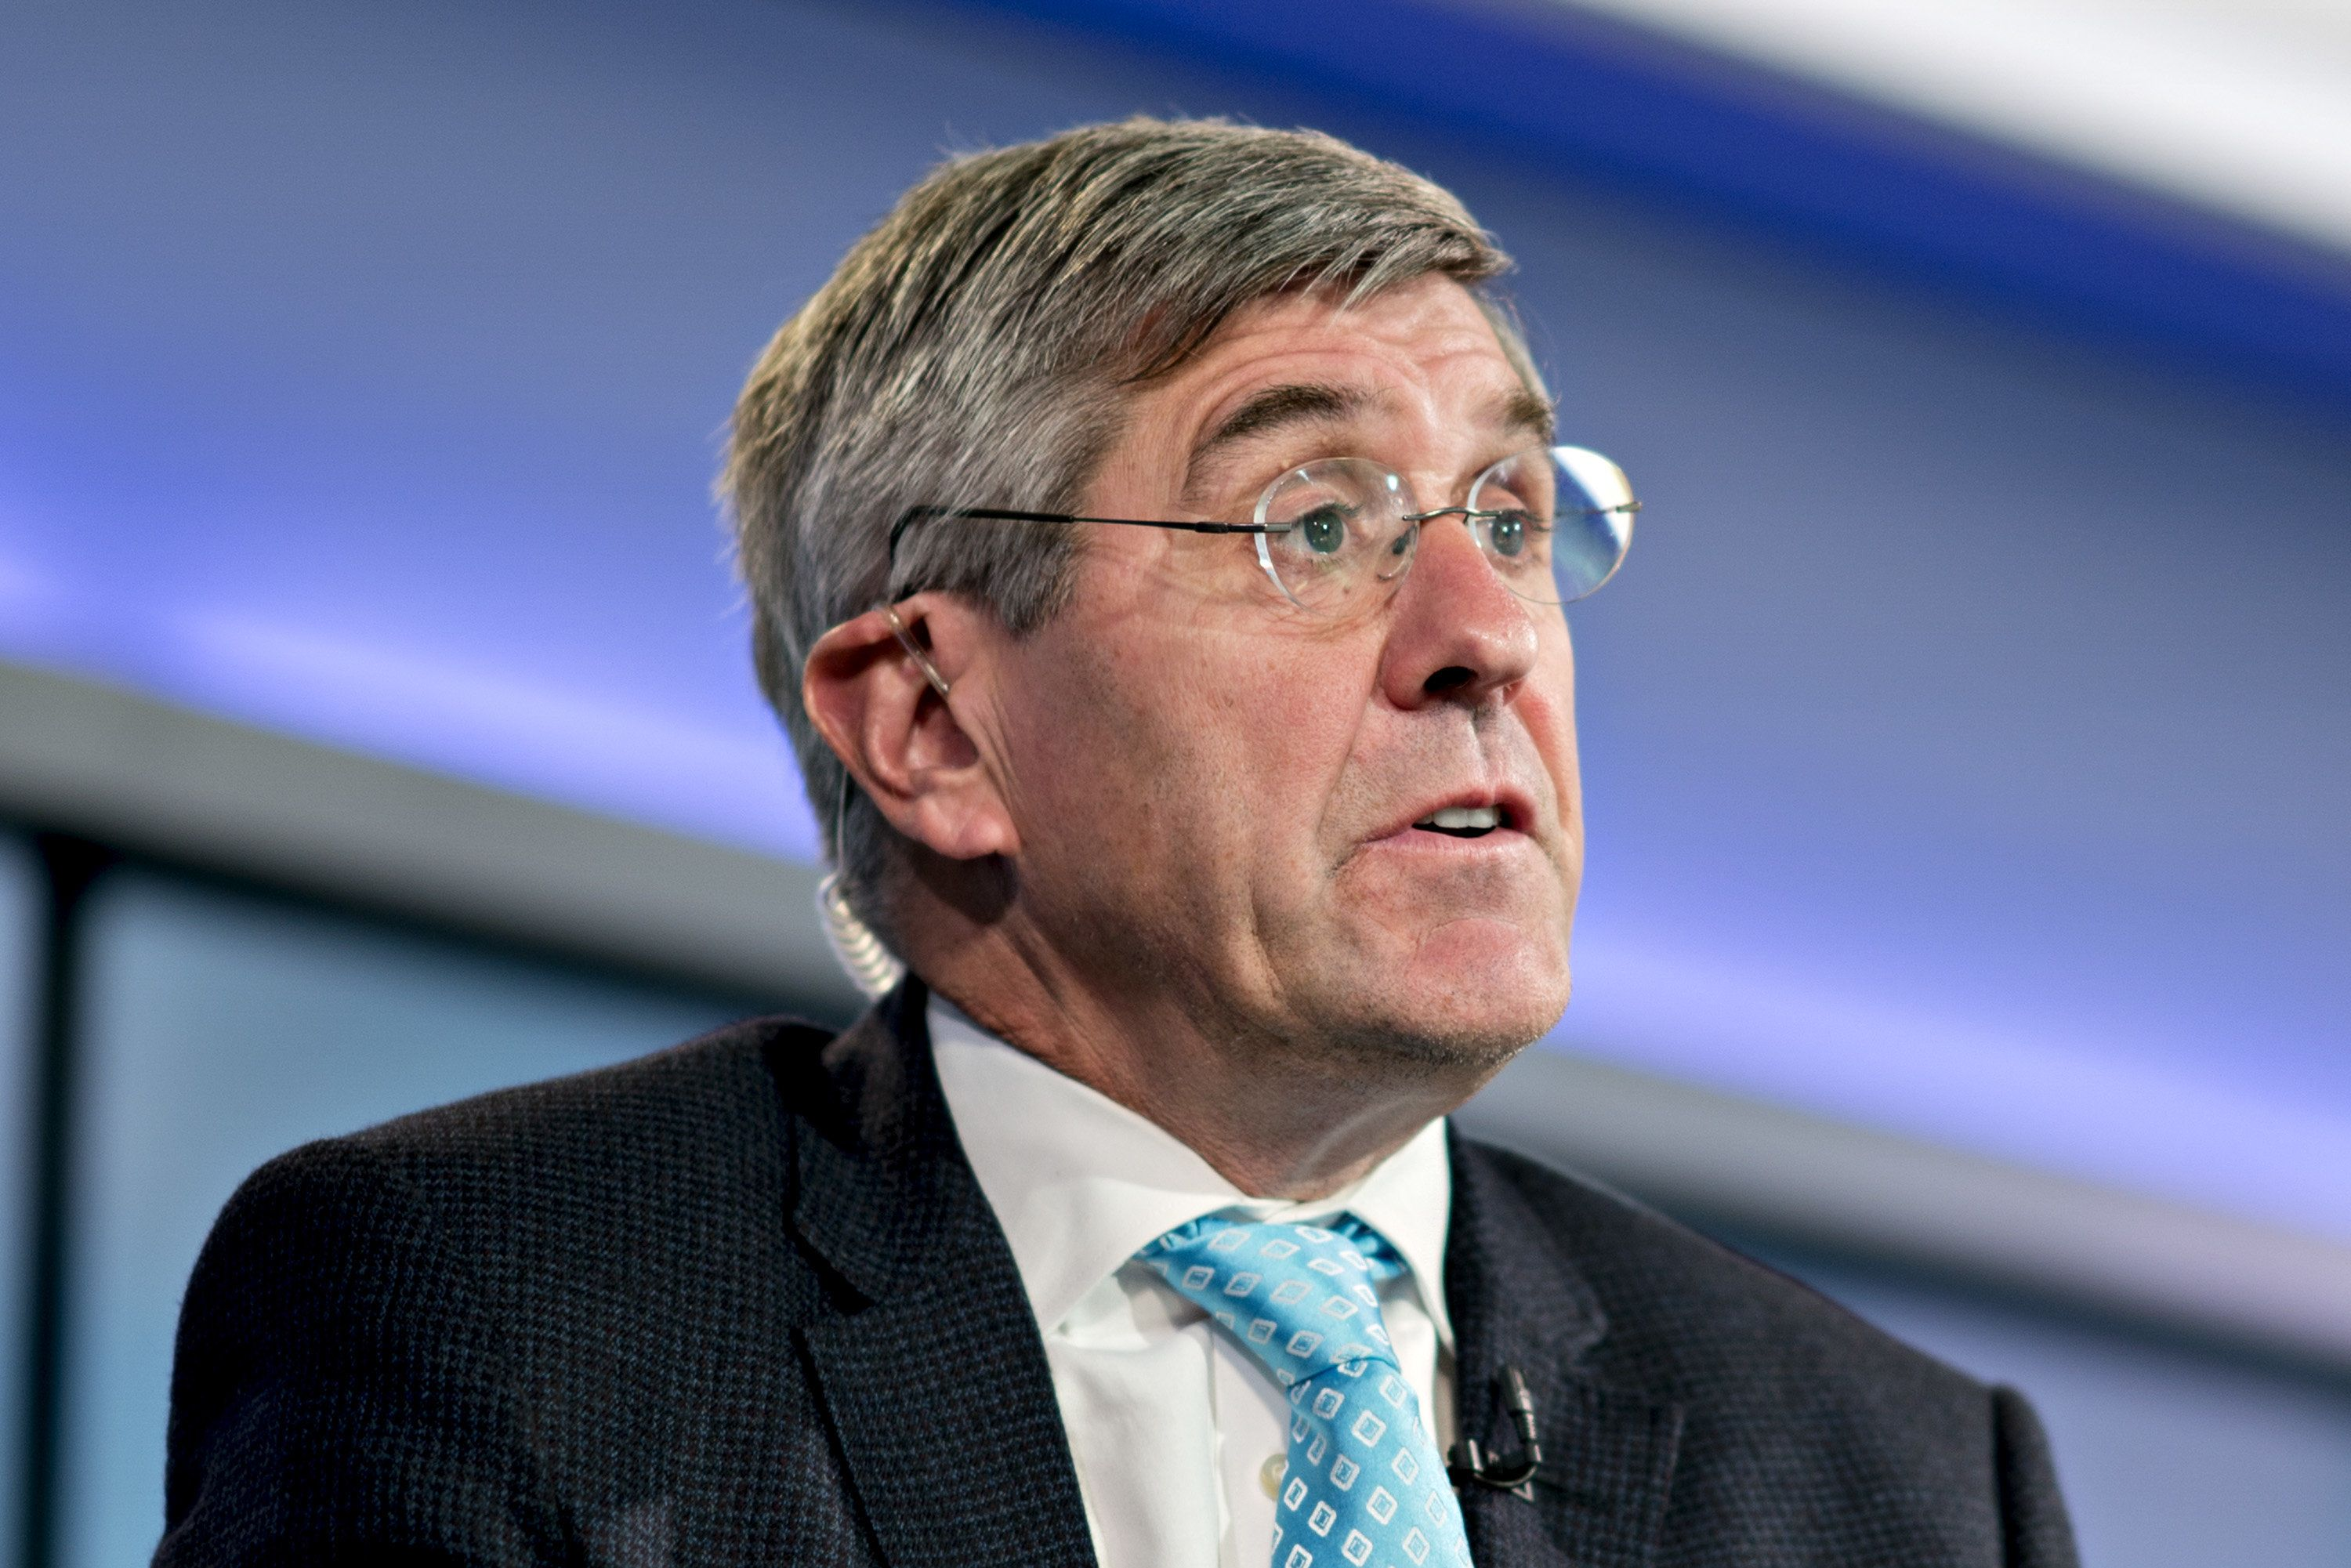 Trump Nominee Stephen Moore Once Called Female Referees 'An Obscenity'